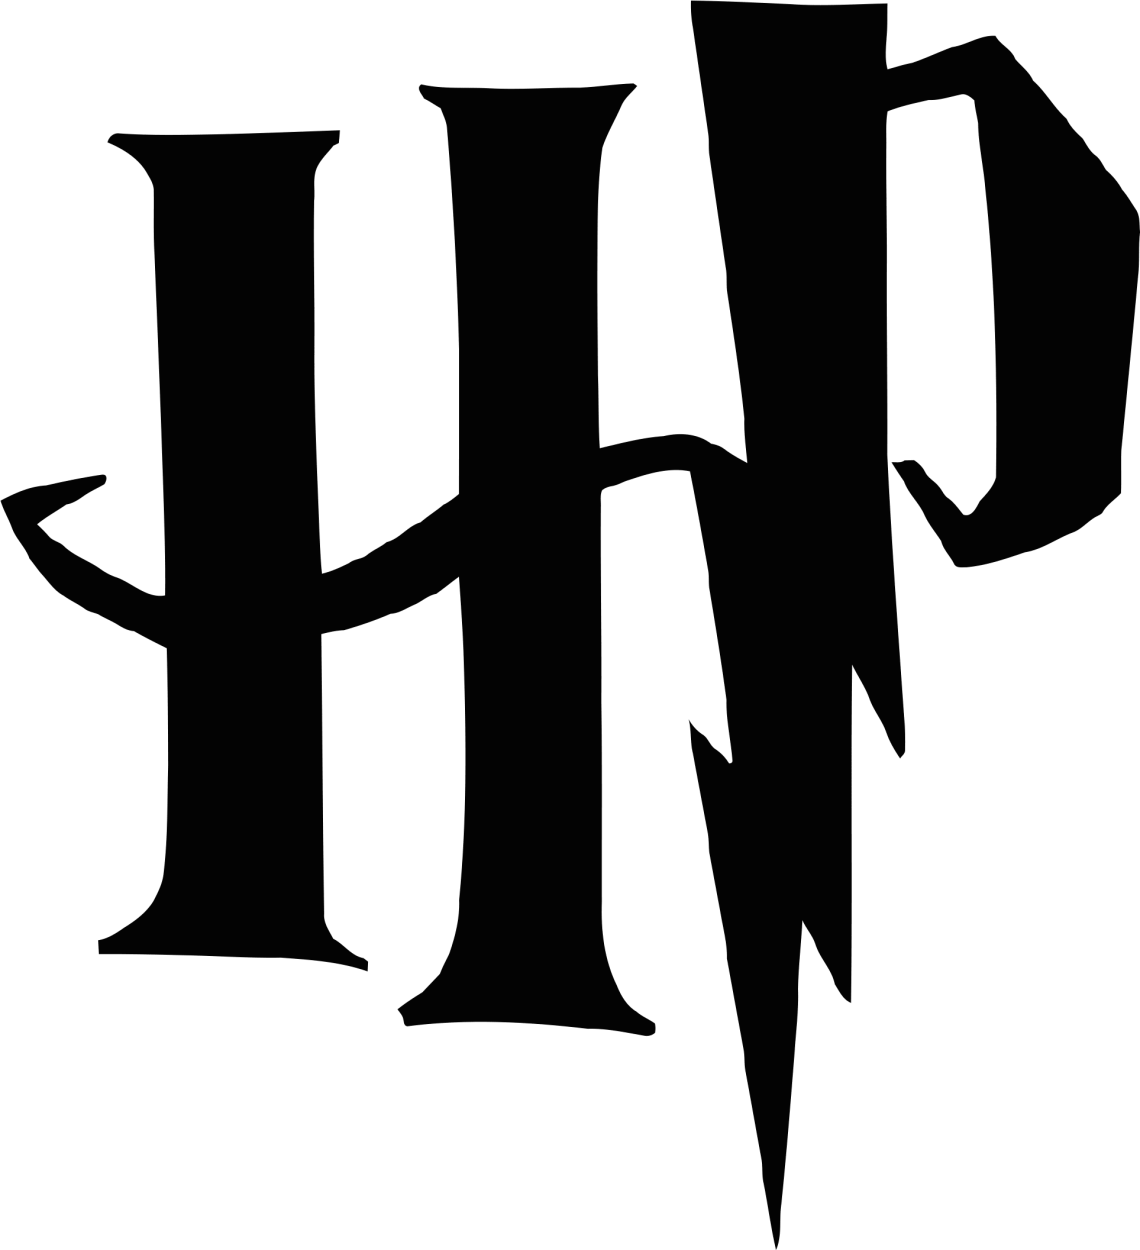 Download Cricut Harry Potter Svg Free Clipart - Full Size Clipart ...